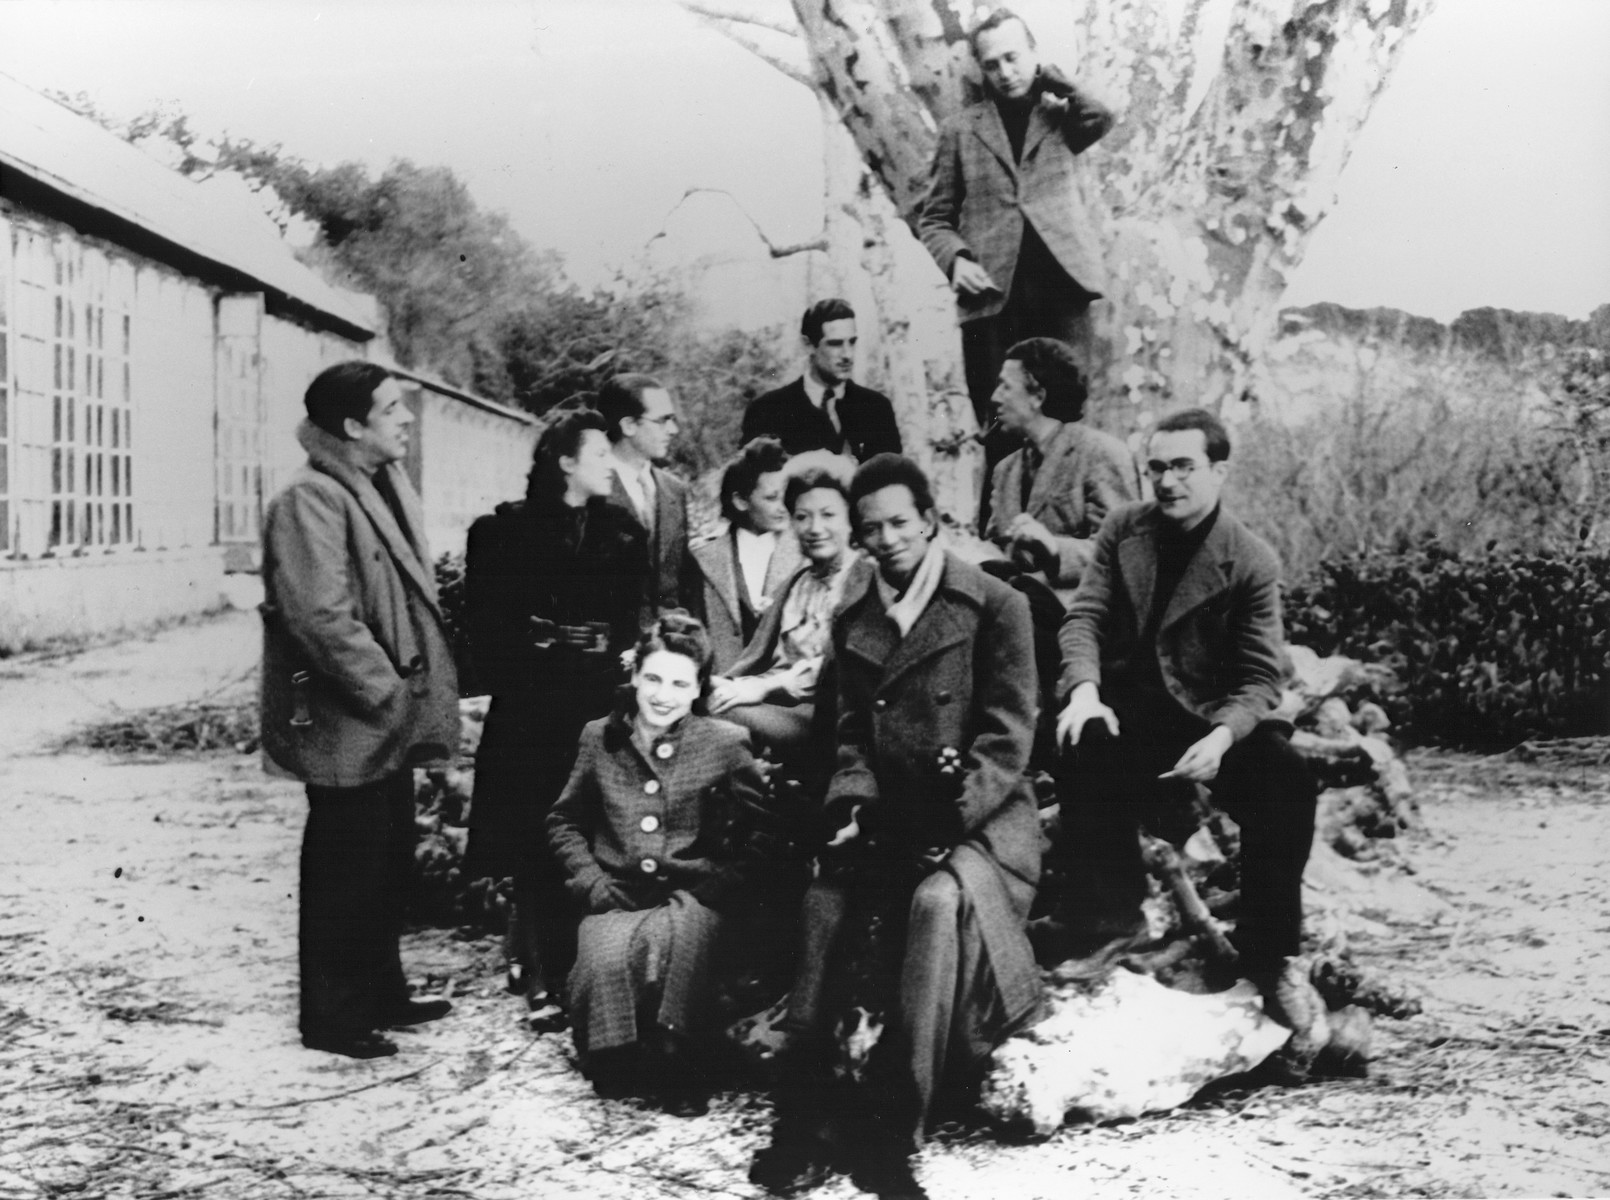 A group of artists poses on the grounds of the Villa Air-Bel near Marseilles.  Among those pictured are Jacques Herold, Oscar Dominguez, Andre Breton, Jacqueline Lamba Breton, Jacques Herold, and Wifredo and Helene Lam.